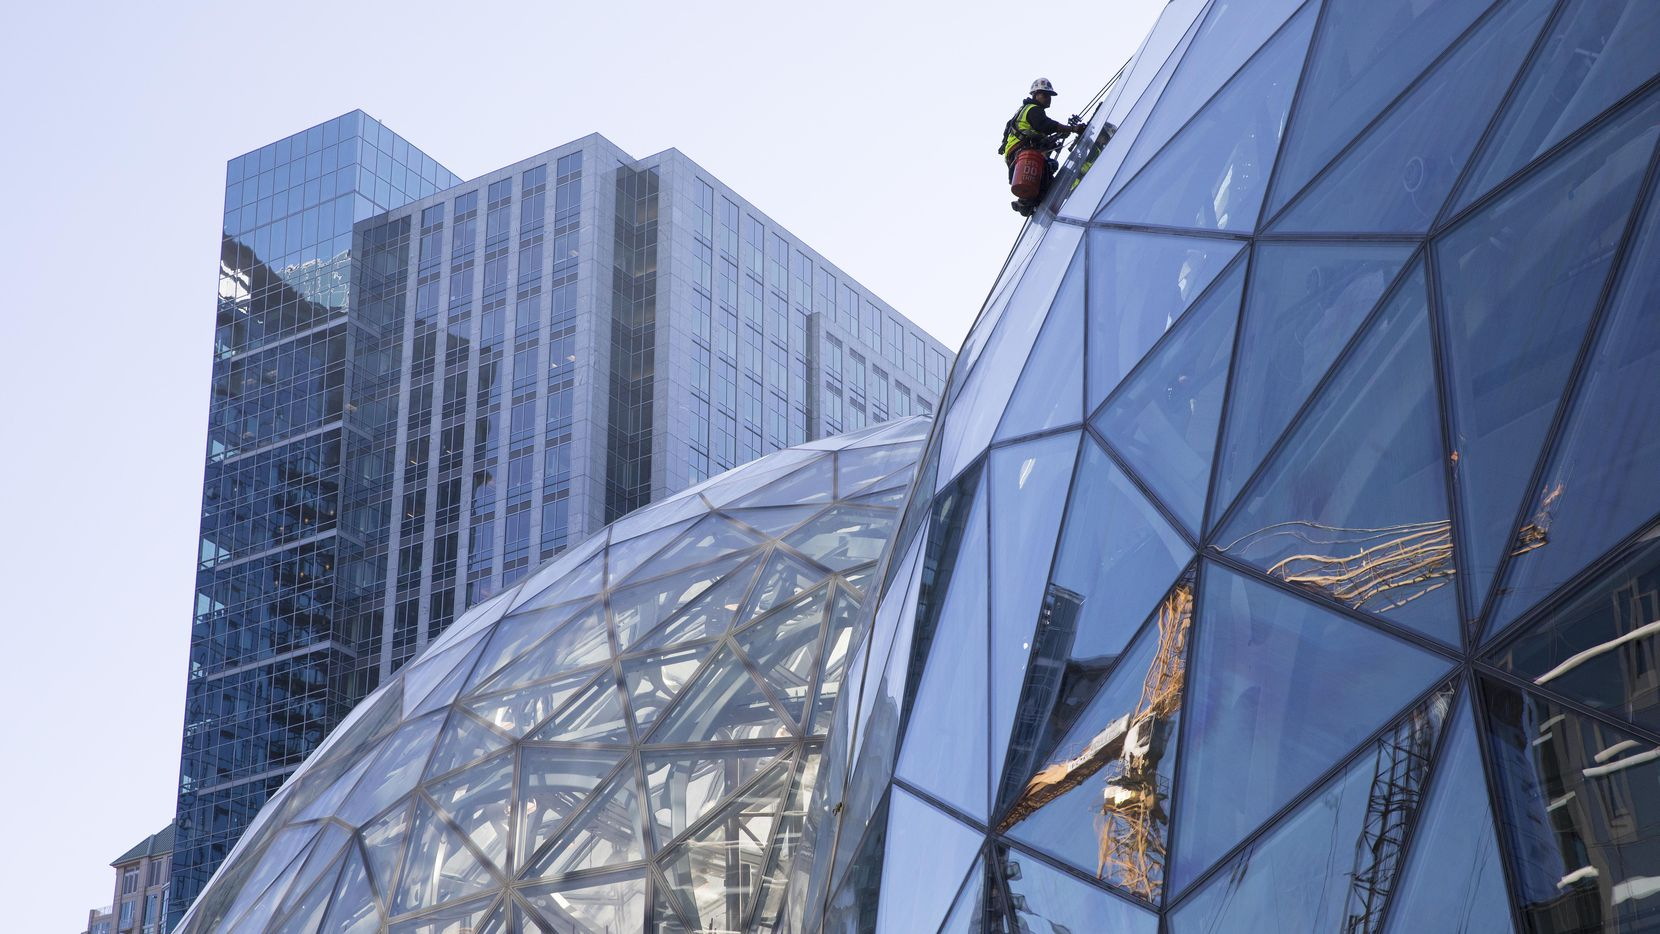 Large spheres in front of Amazon's building in Seattle. , Amazon said in October it had received proposals from 238 cities and regions across North America that are vying for its new, second headquarters, called HQ2.